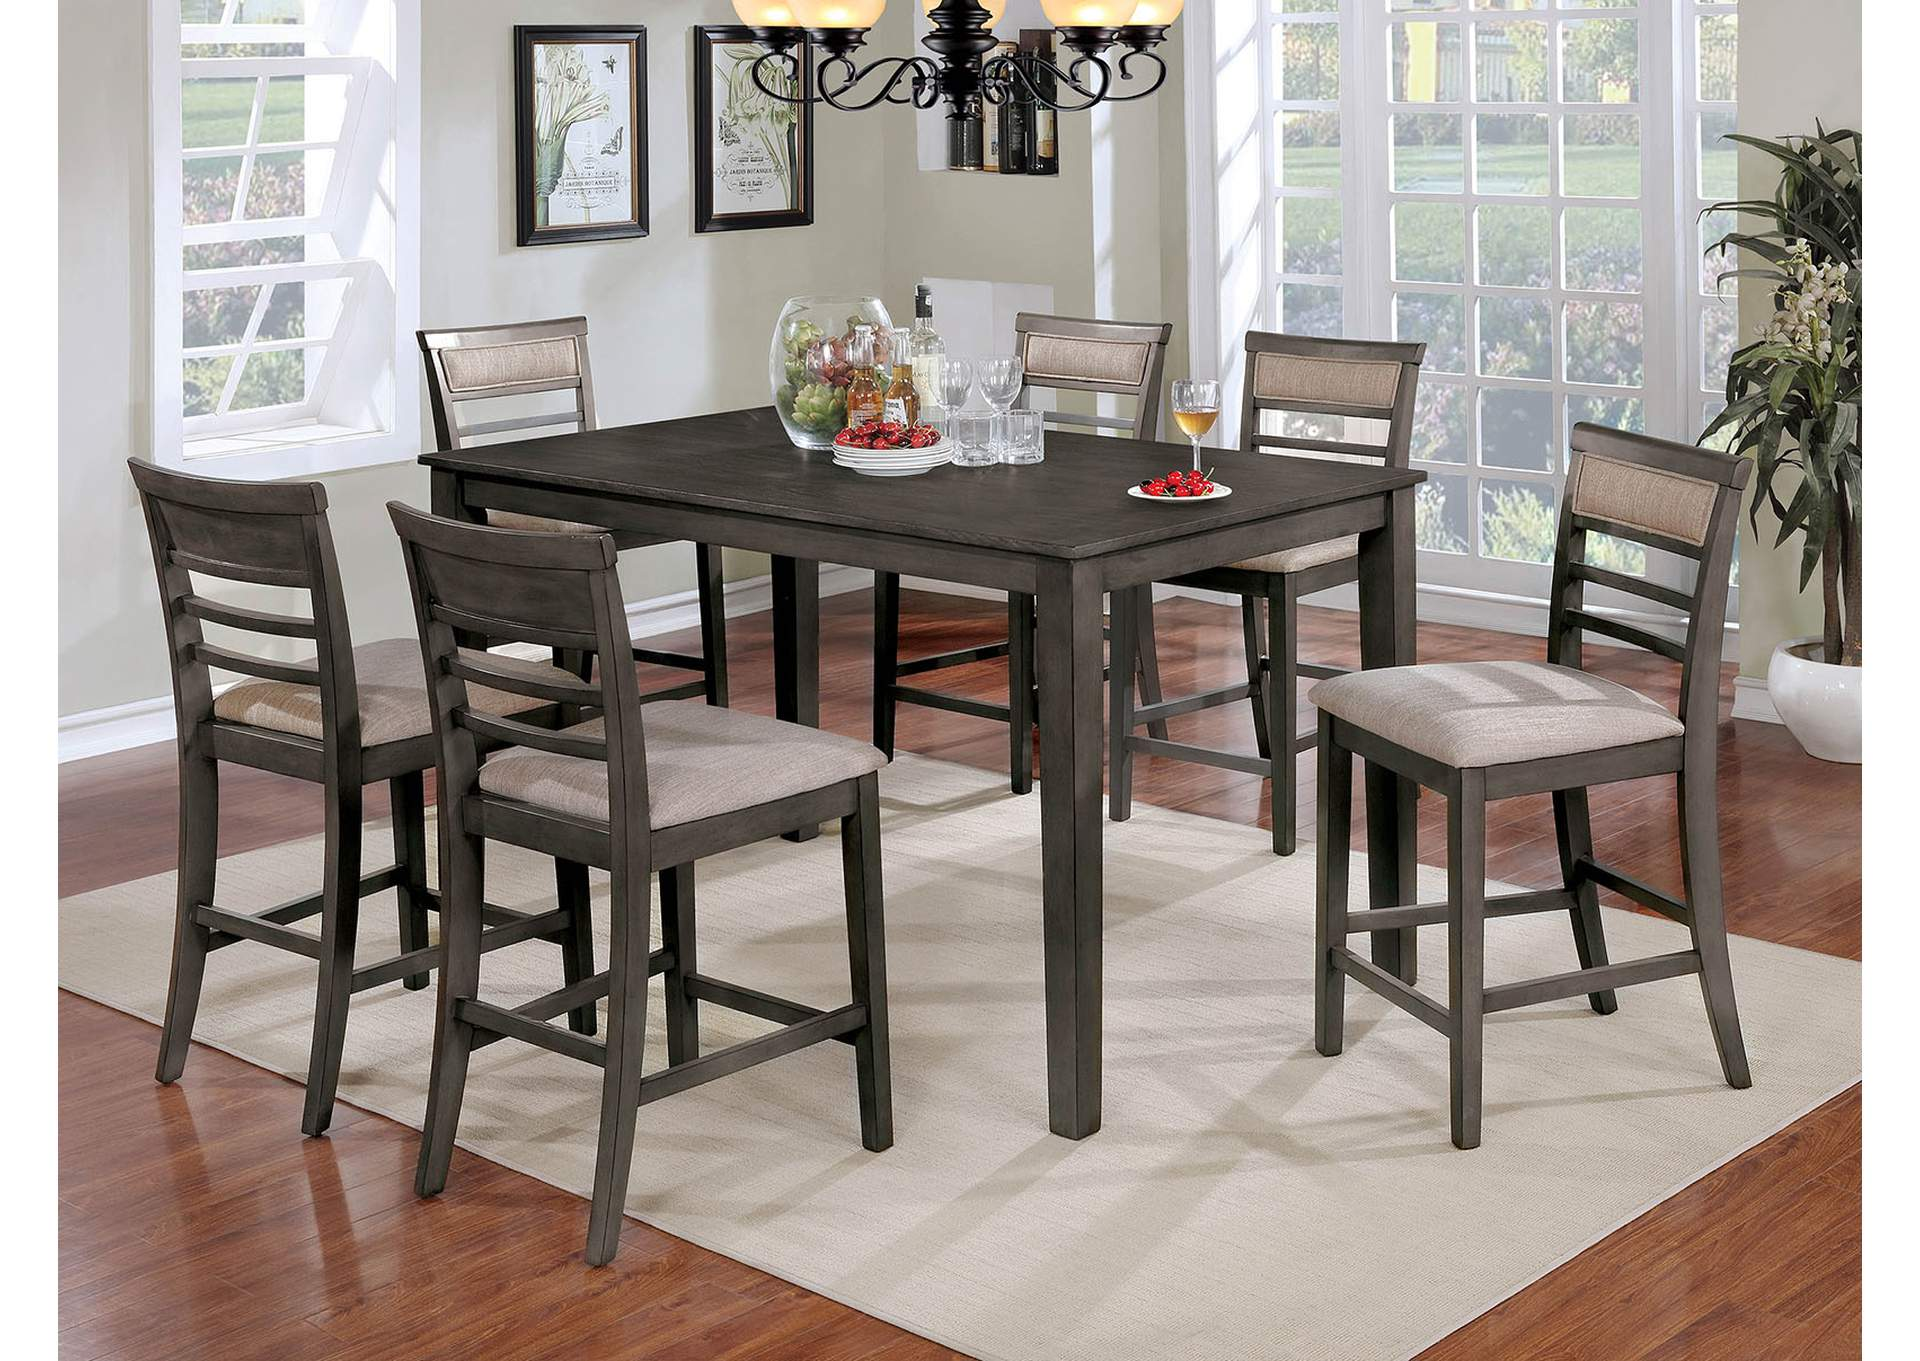 Fafnir Gray 7 Piece Counter Height Table Set,Furniture of America